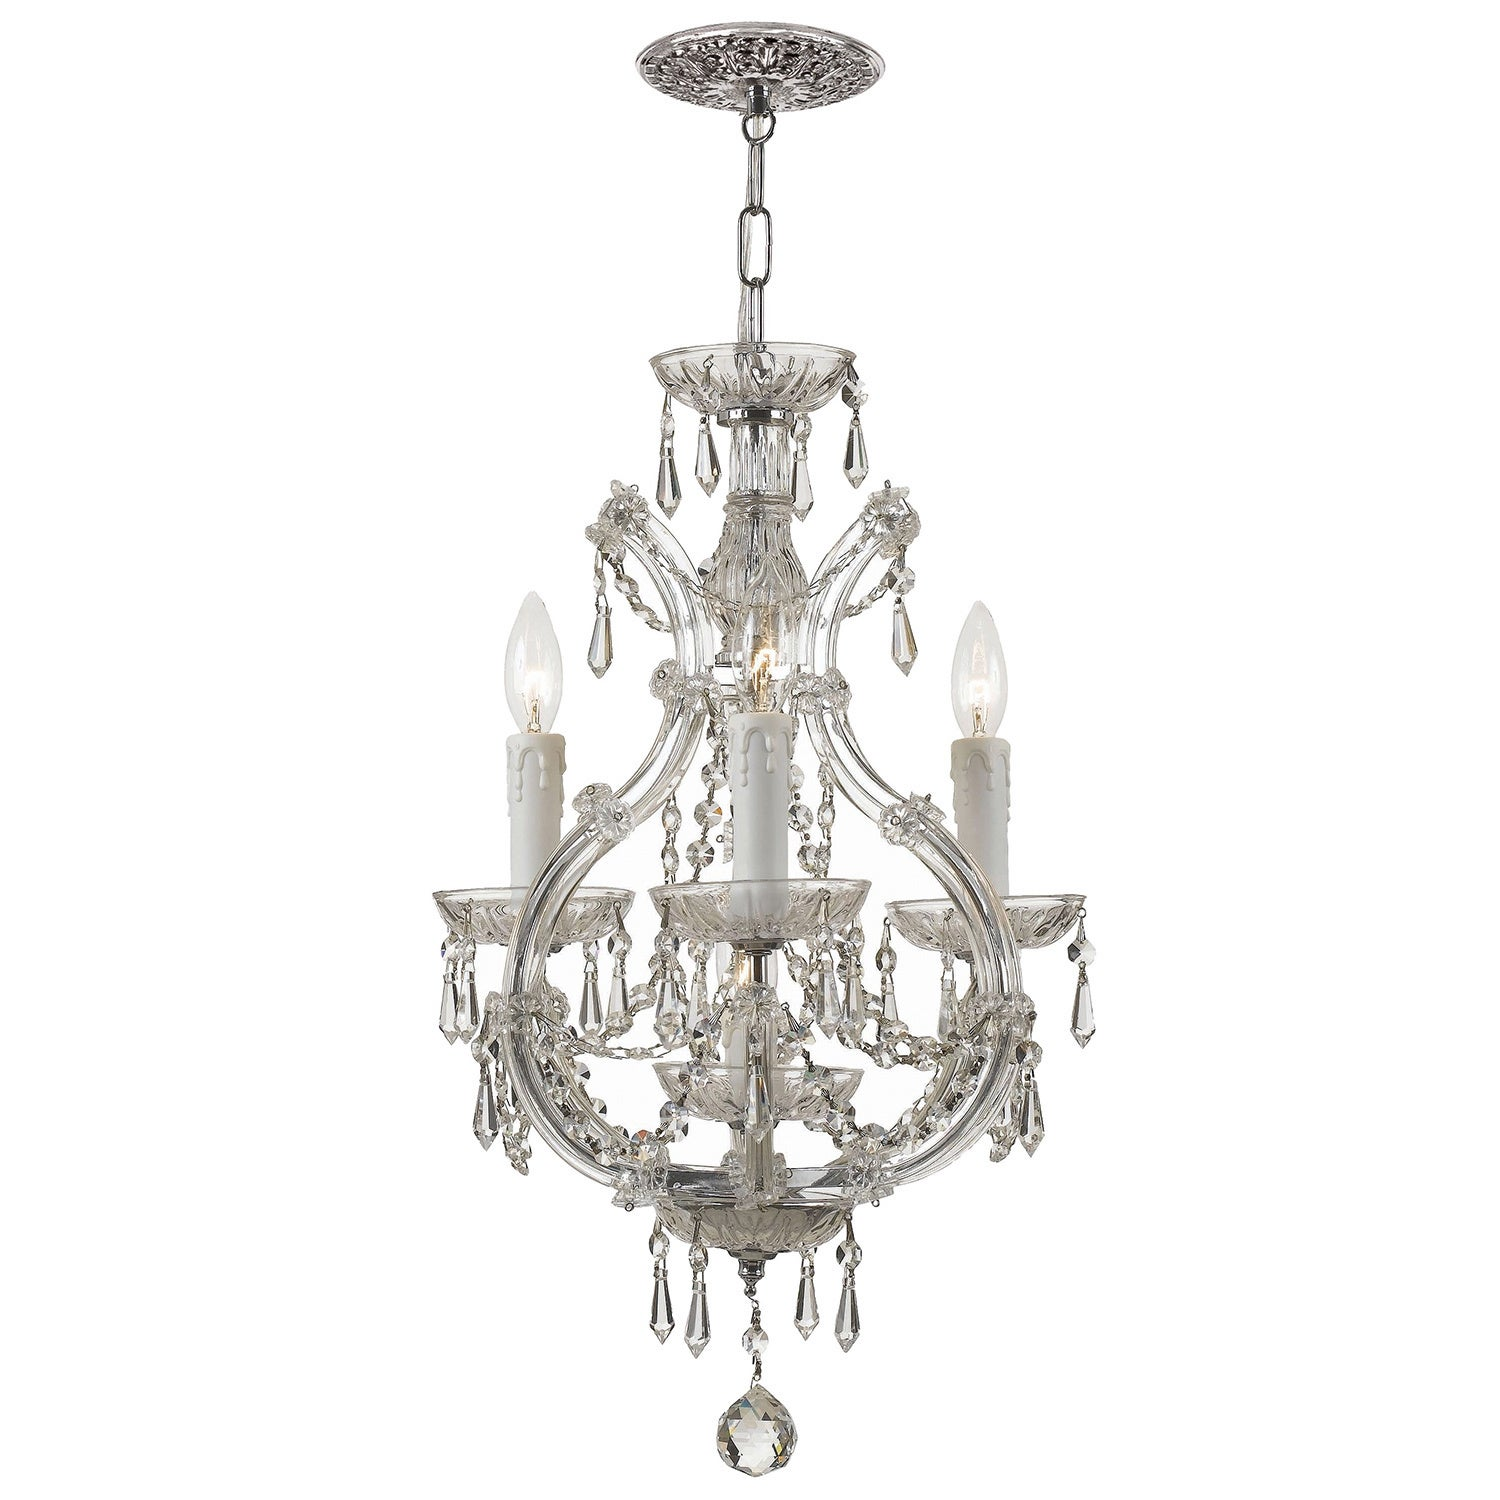 Crystorama maria theresa 3 light polished chrome mini chandelier crystorama maria theresa 3 light polished chrome mini chandelier free shipping today overstock 13065507 aloadofball Images